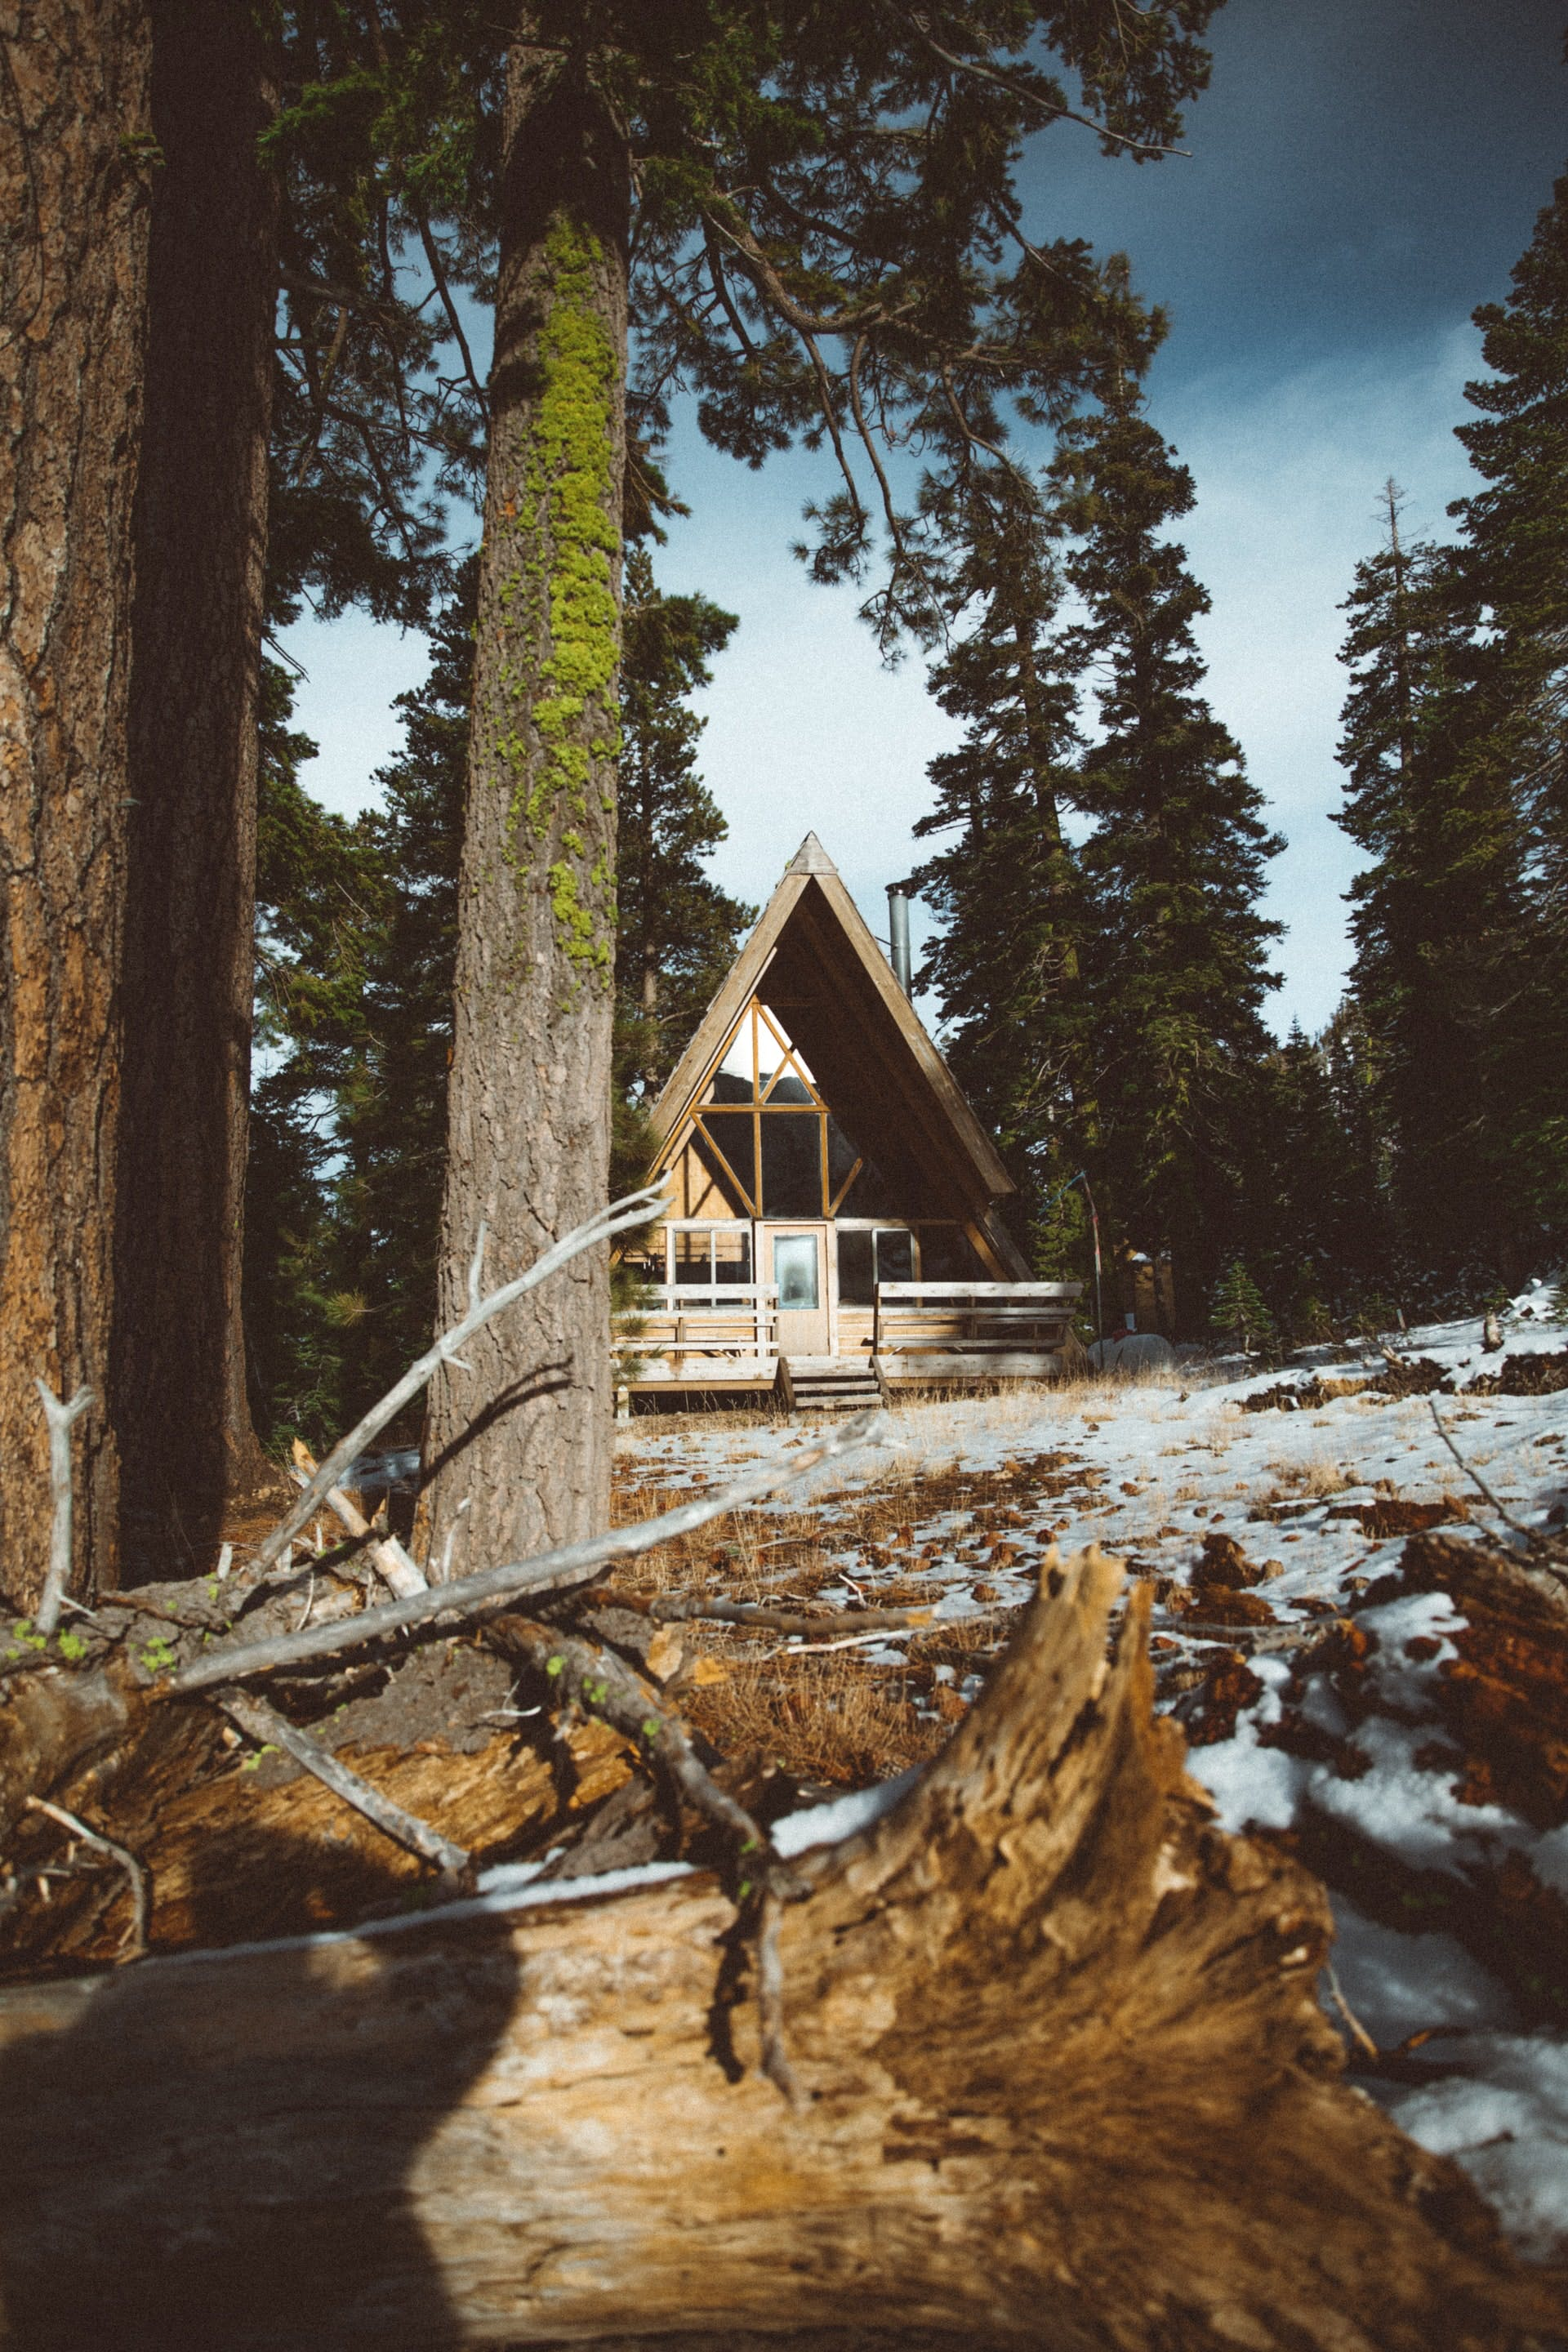 What should I pack for glamping?